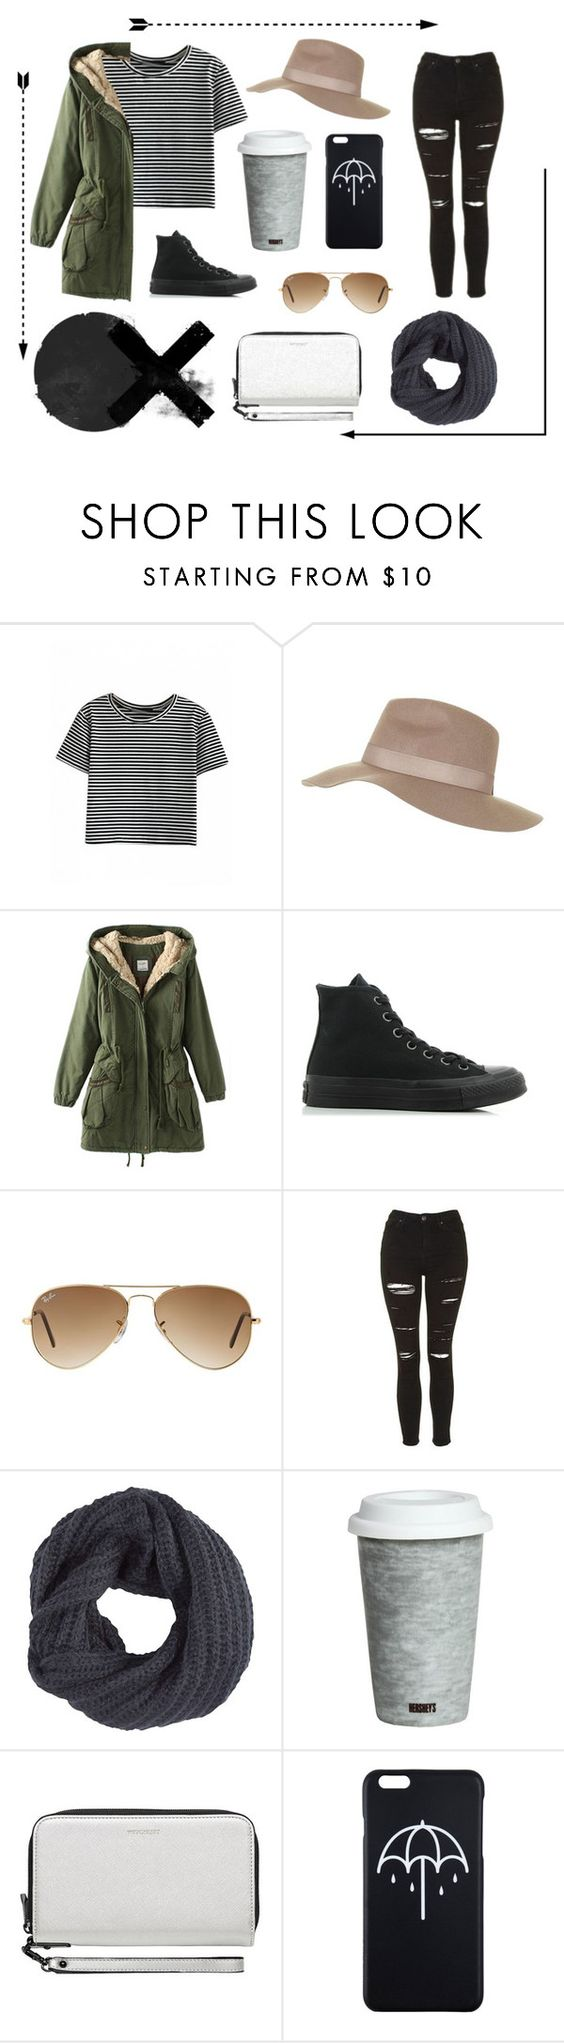 """☁️"" by ann-molly ❤ liked on Polyvore featuring Topshop, Converse, Ray-Ban, Pistil, Fitz and Floyd and Witchery"